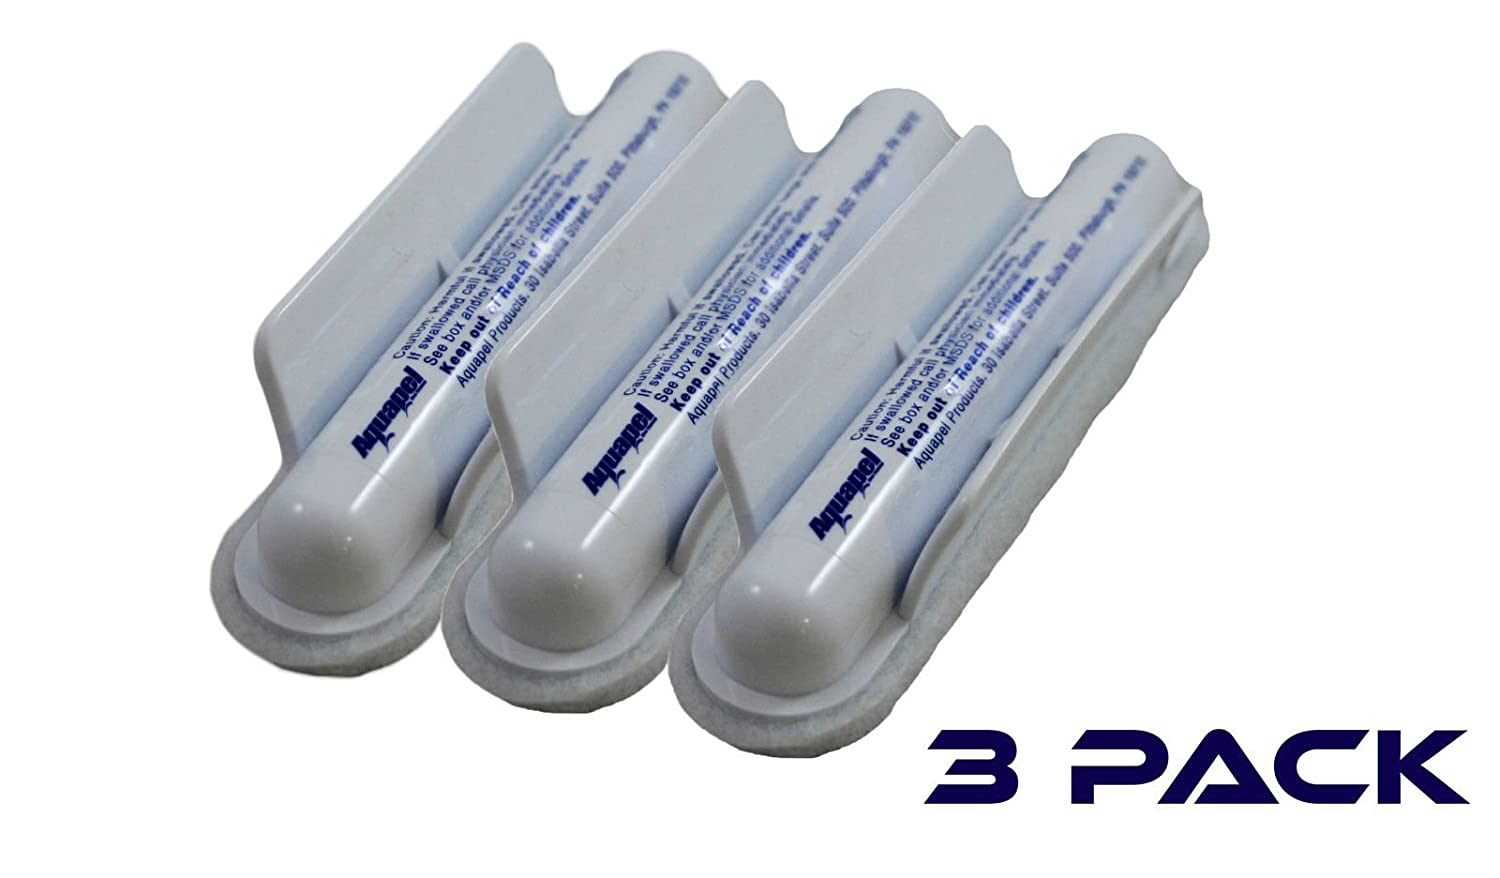 Three (3) Aquapel Glass Treatment Applicators 4332946847